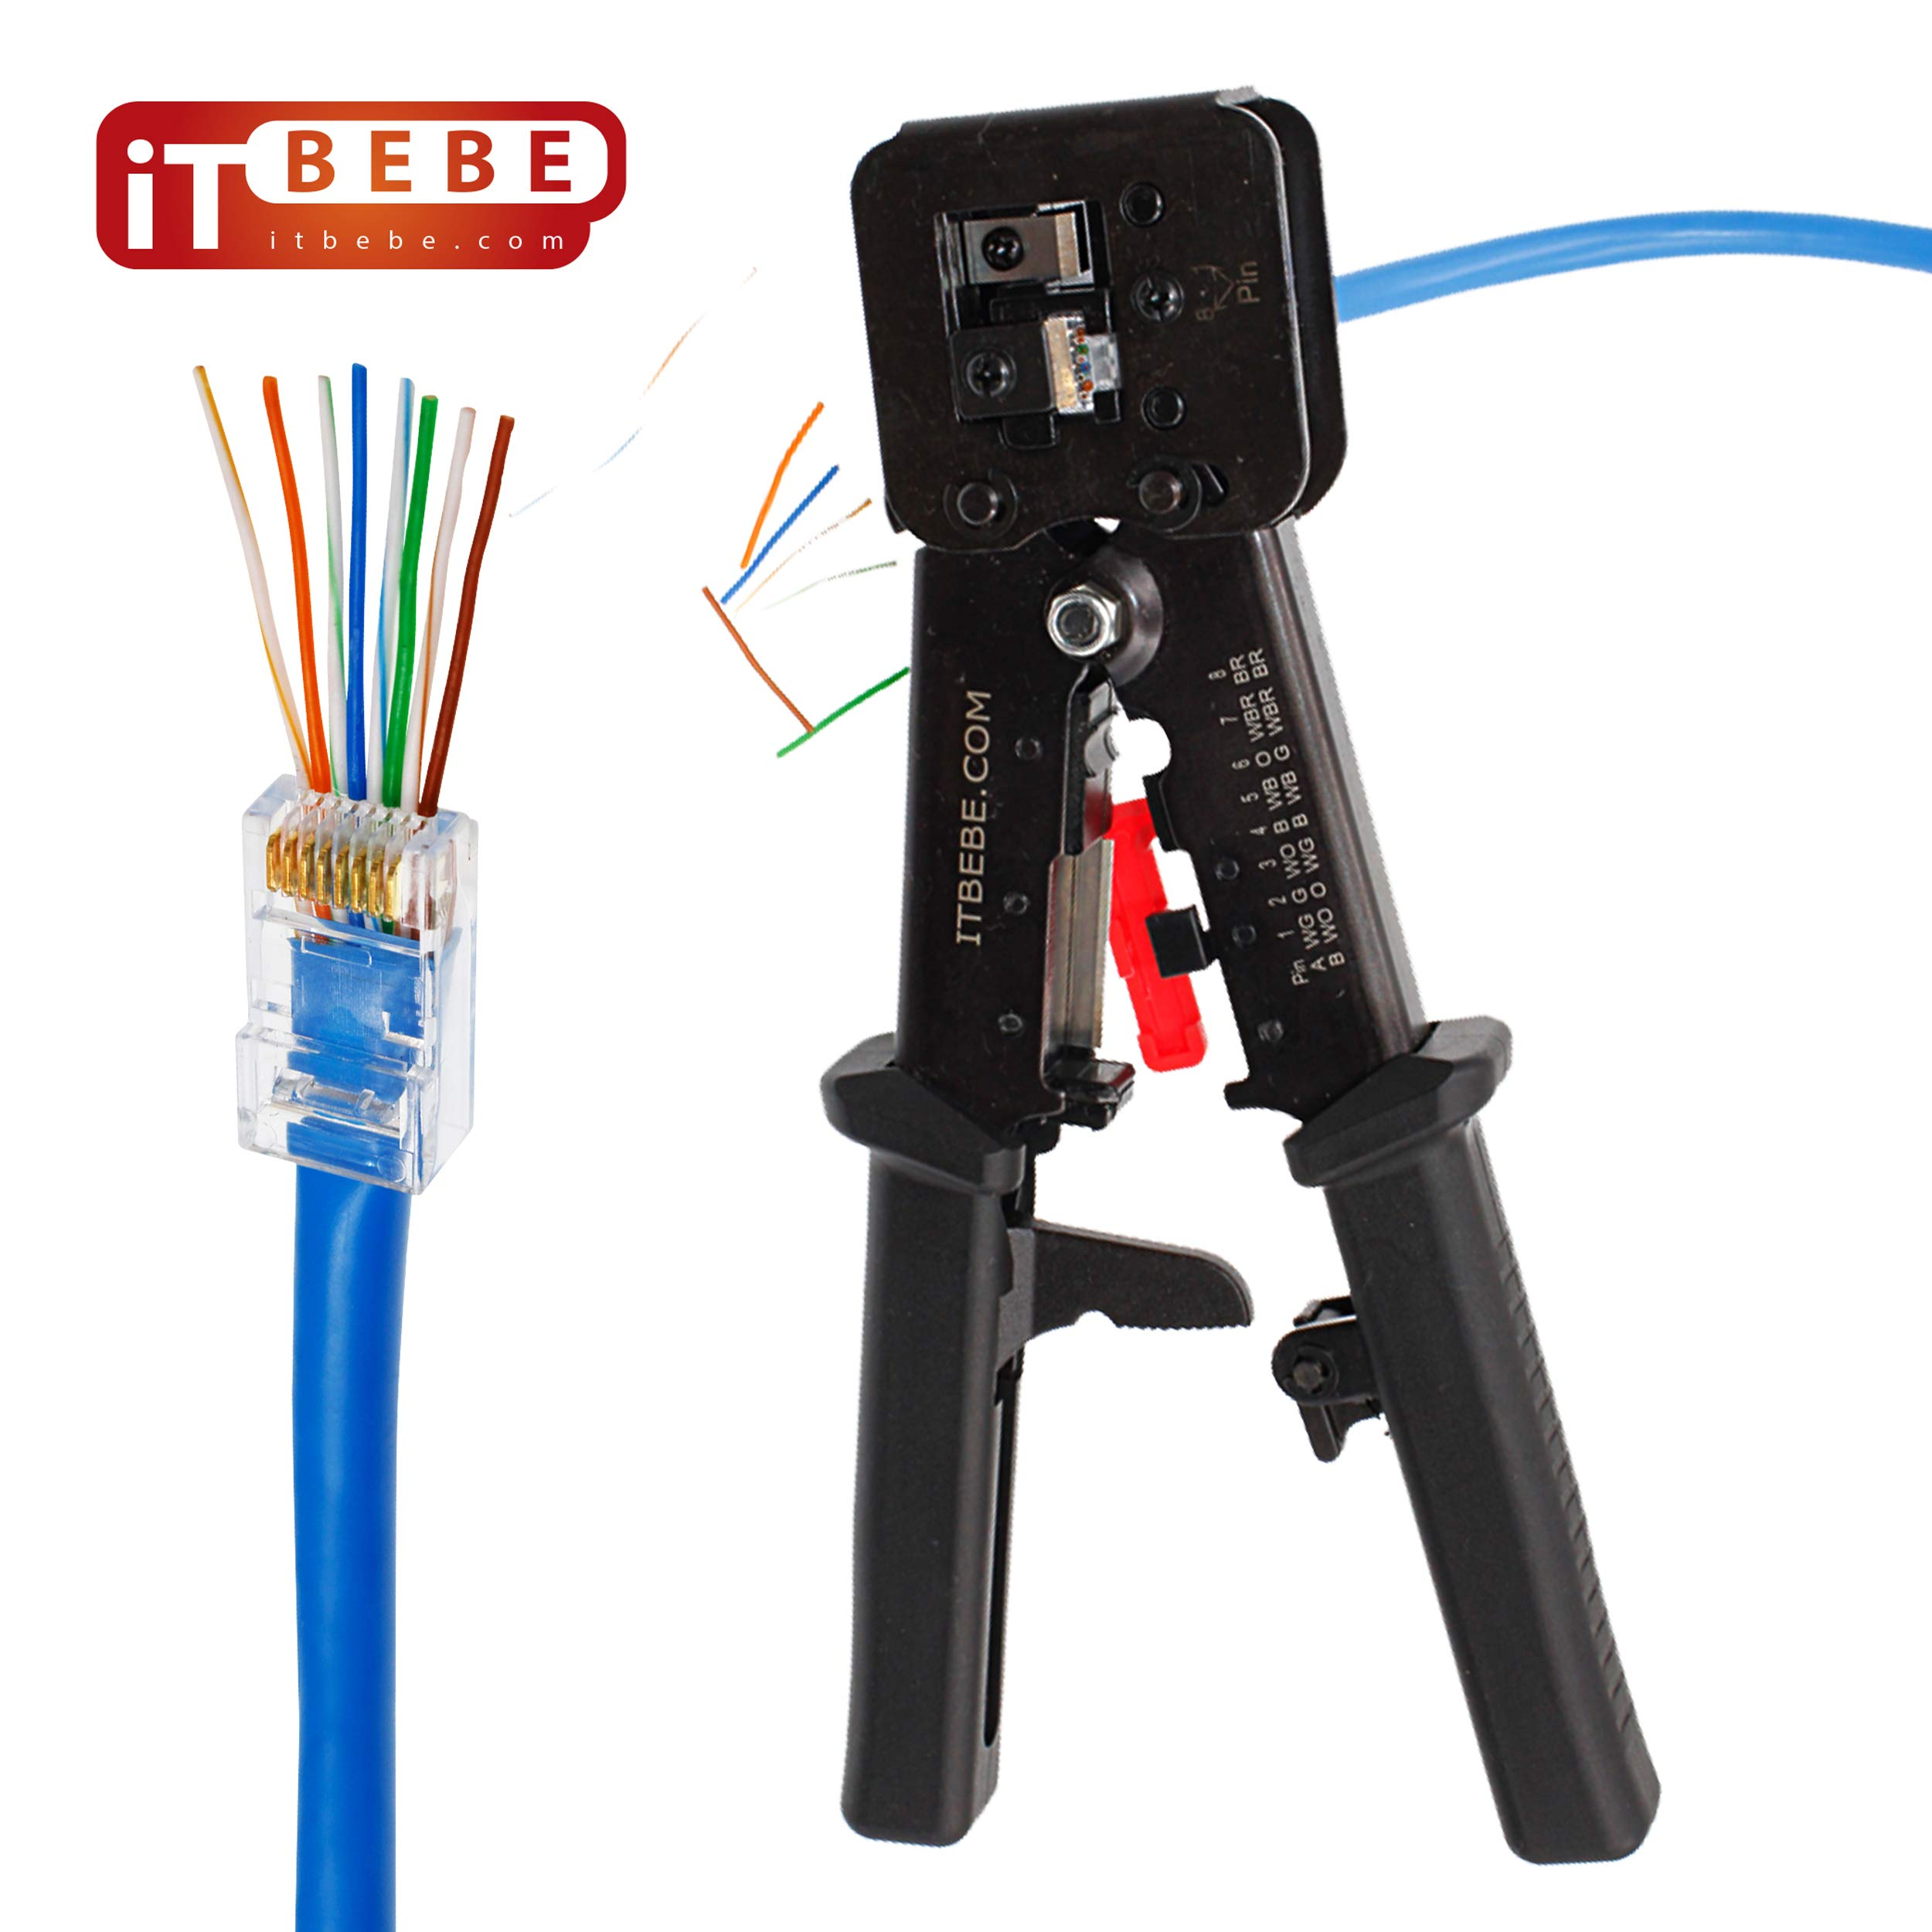 ITBEBE RJ45 Crimping Tool Made of Hardened Steel with Wire Cutter Stripping Blades and Black Textured Grips by itbebe.com (Image #1)